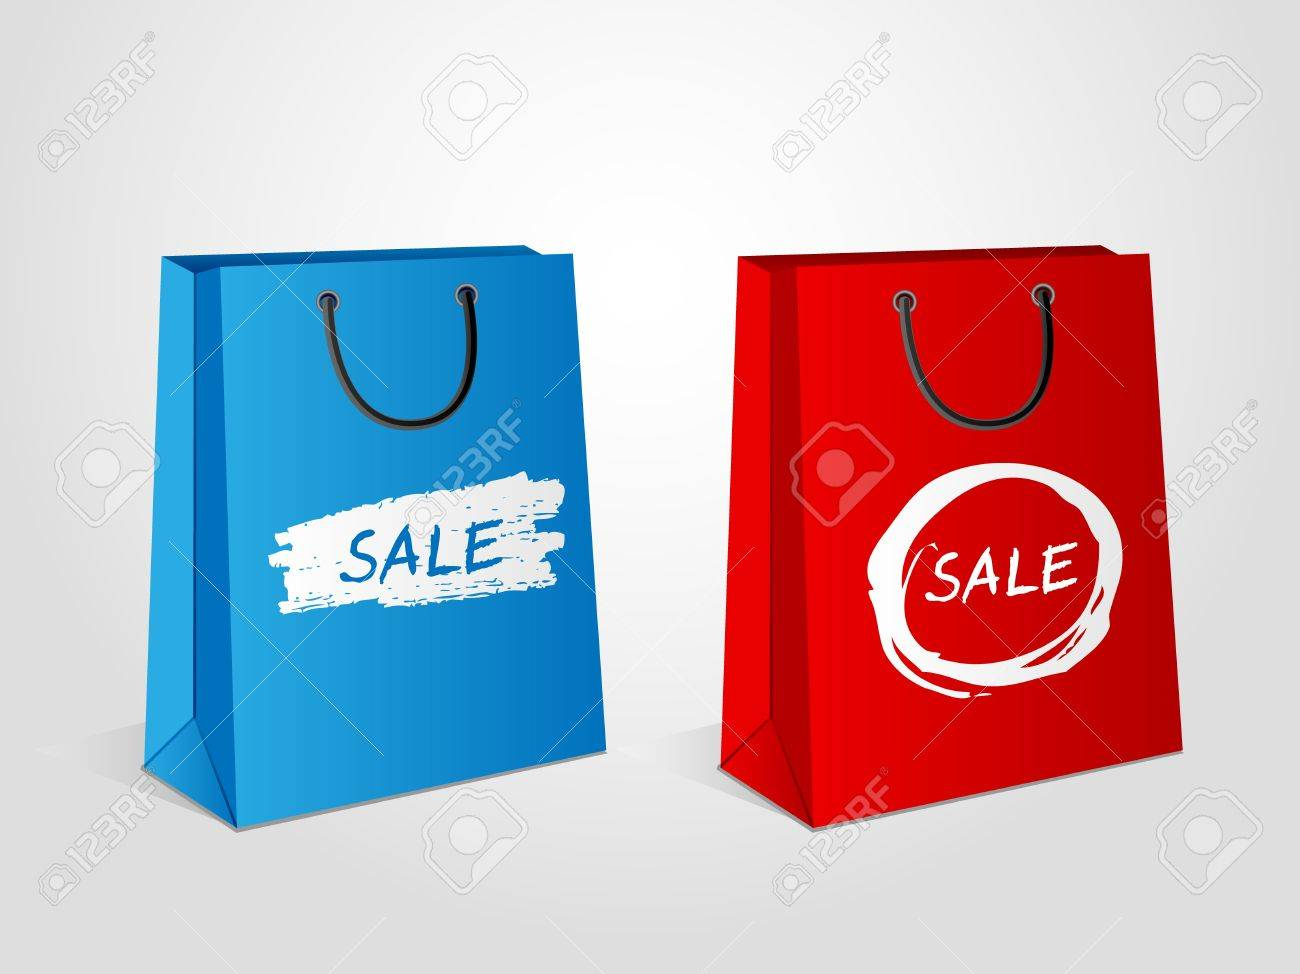 shopping bags sale royalty free cliparts vectors and stock